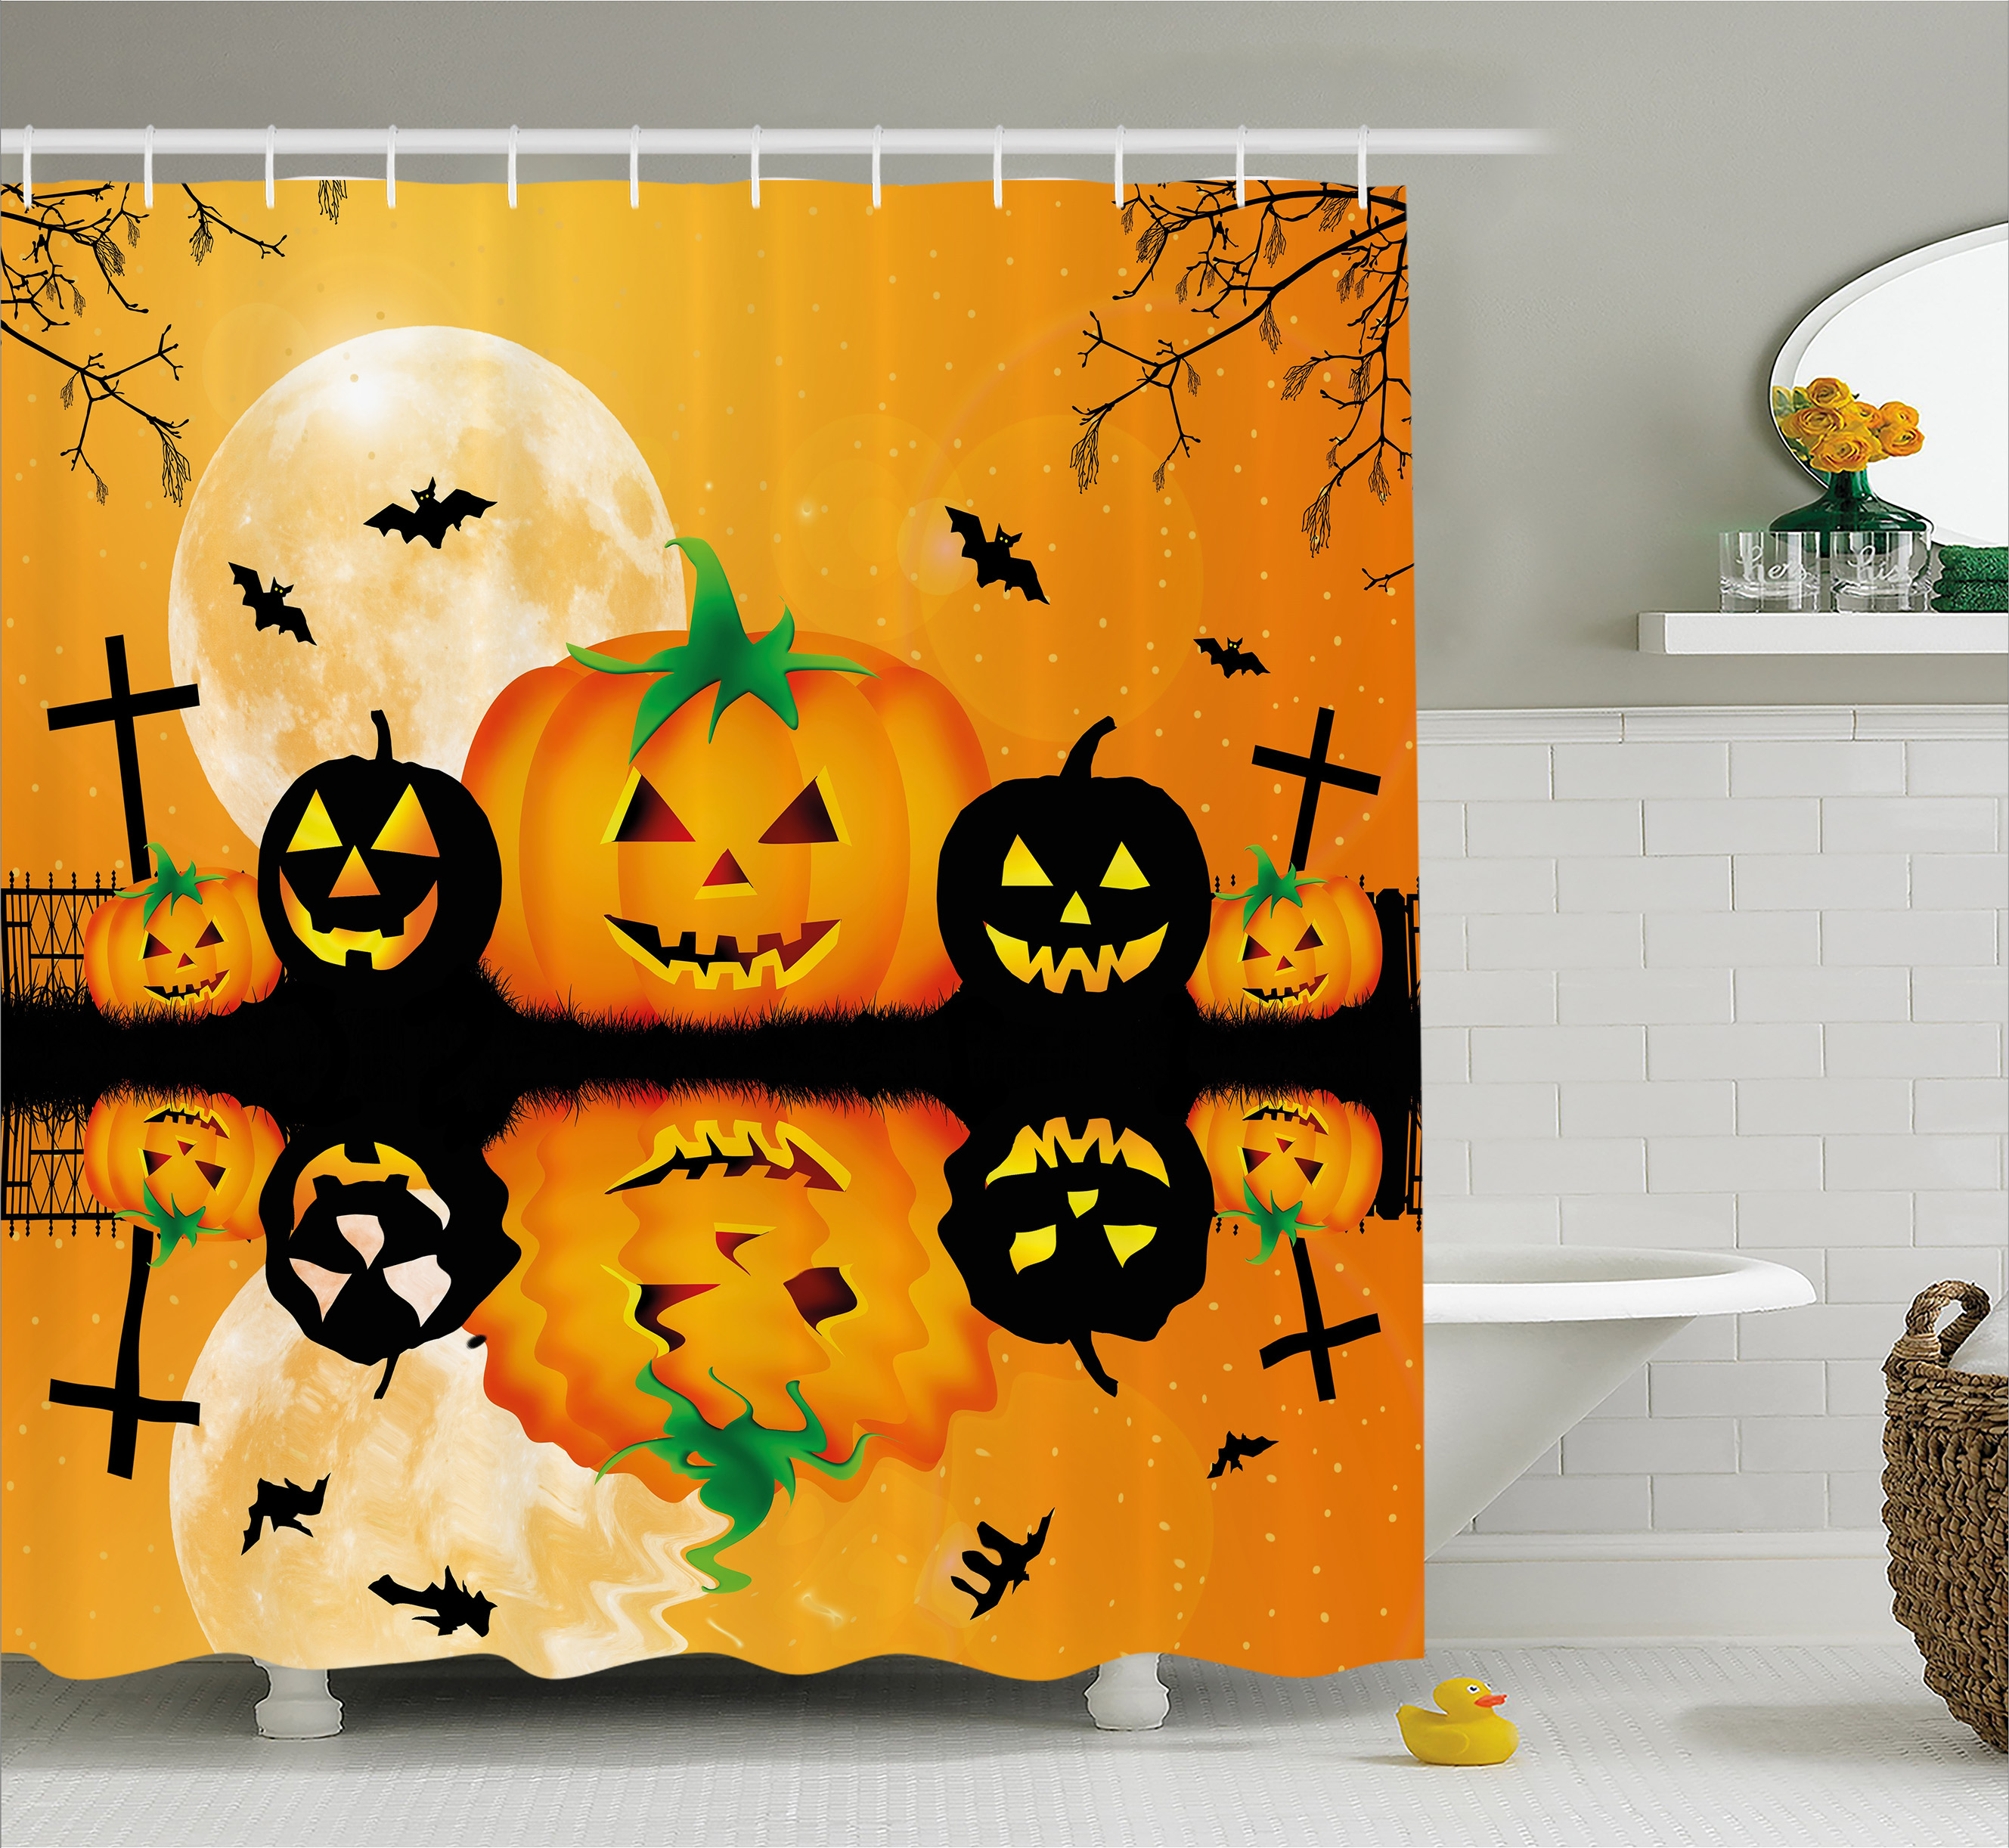 Halloween Decorations Shower Curtain, Spooky Carved Halloween Pumpkin Full Moon with Bats and Grave Lake, Fabric Bathroom Set with Hooks, 69W X 70L Inches, Orange Black, by Ambesonne